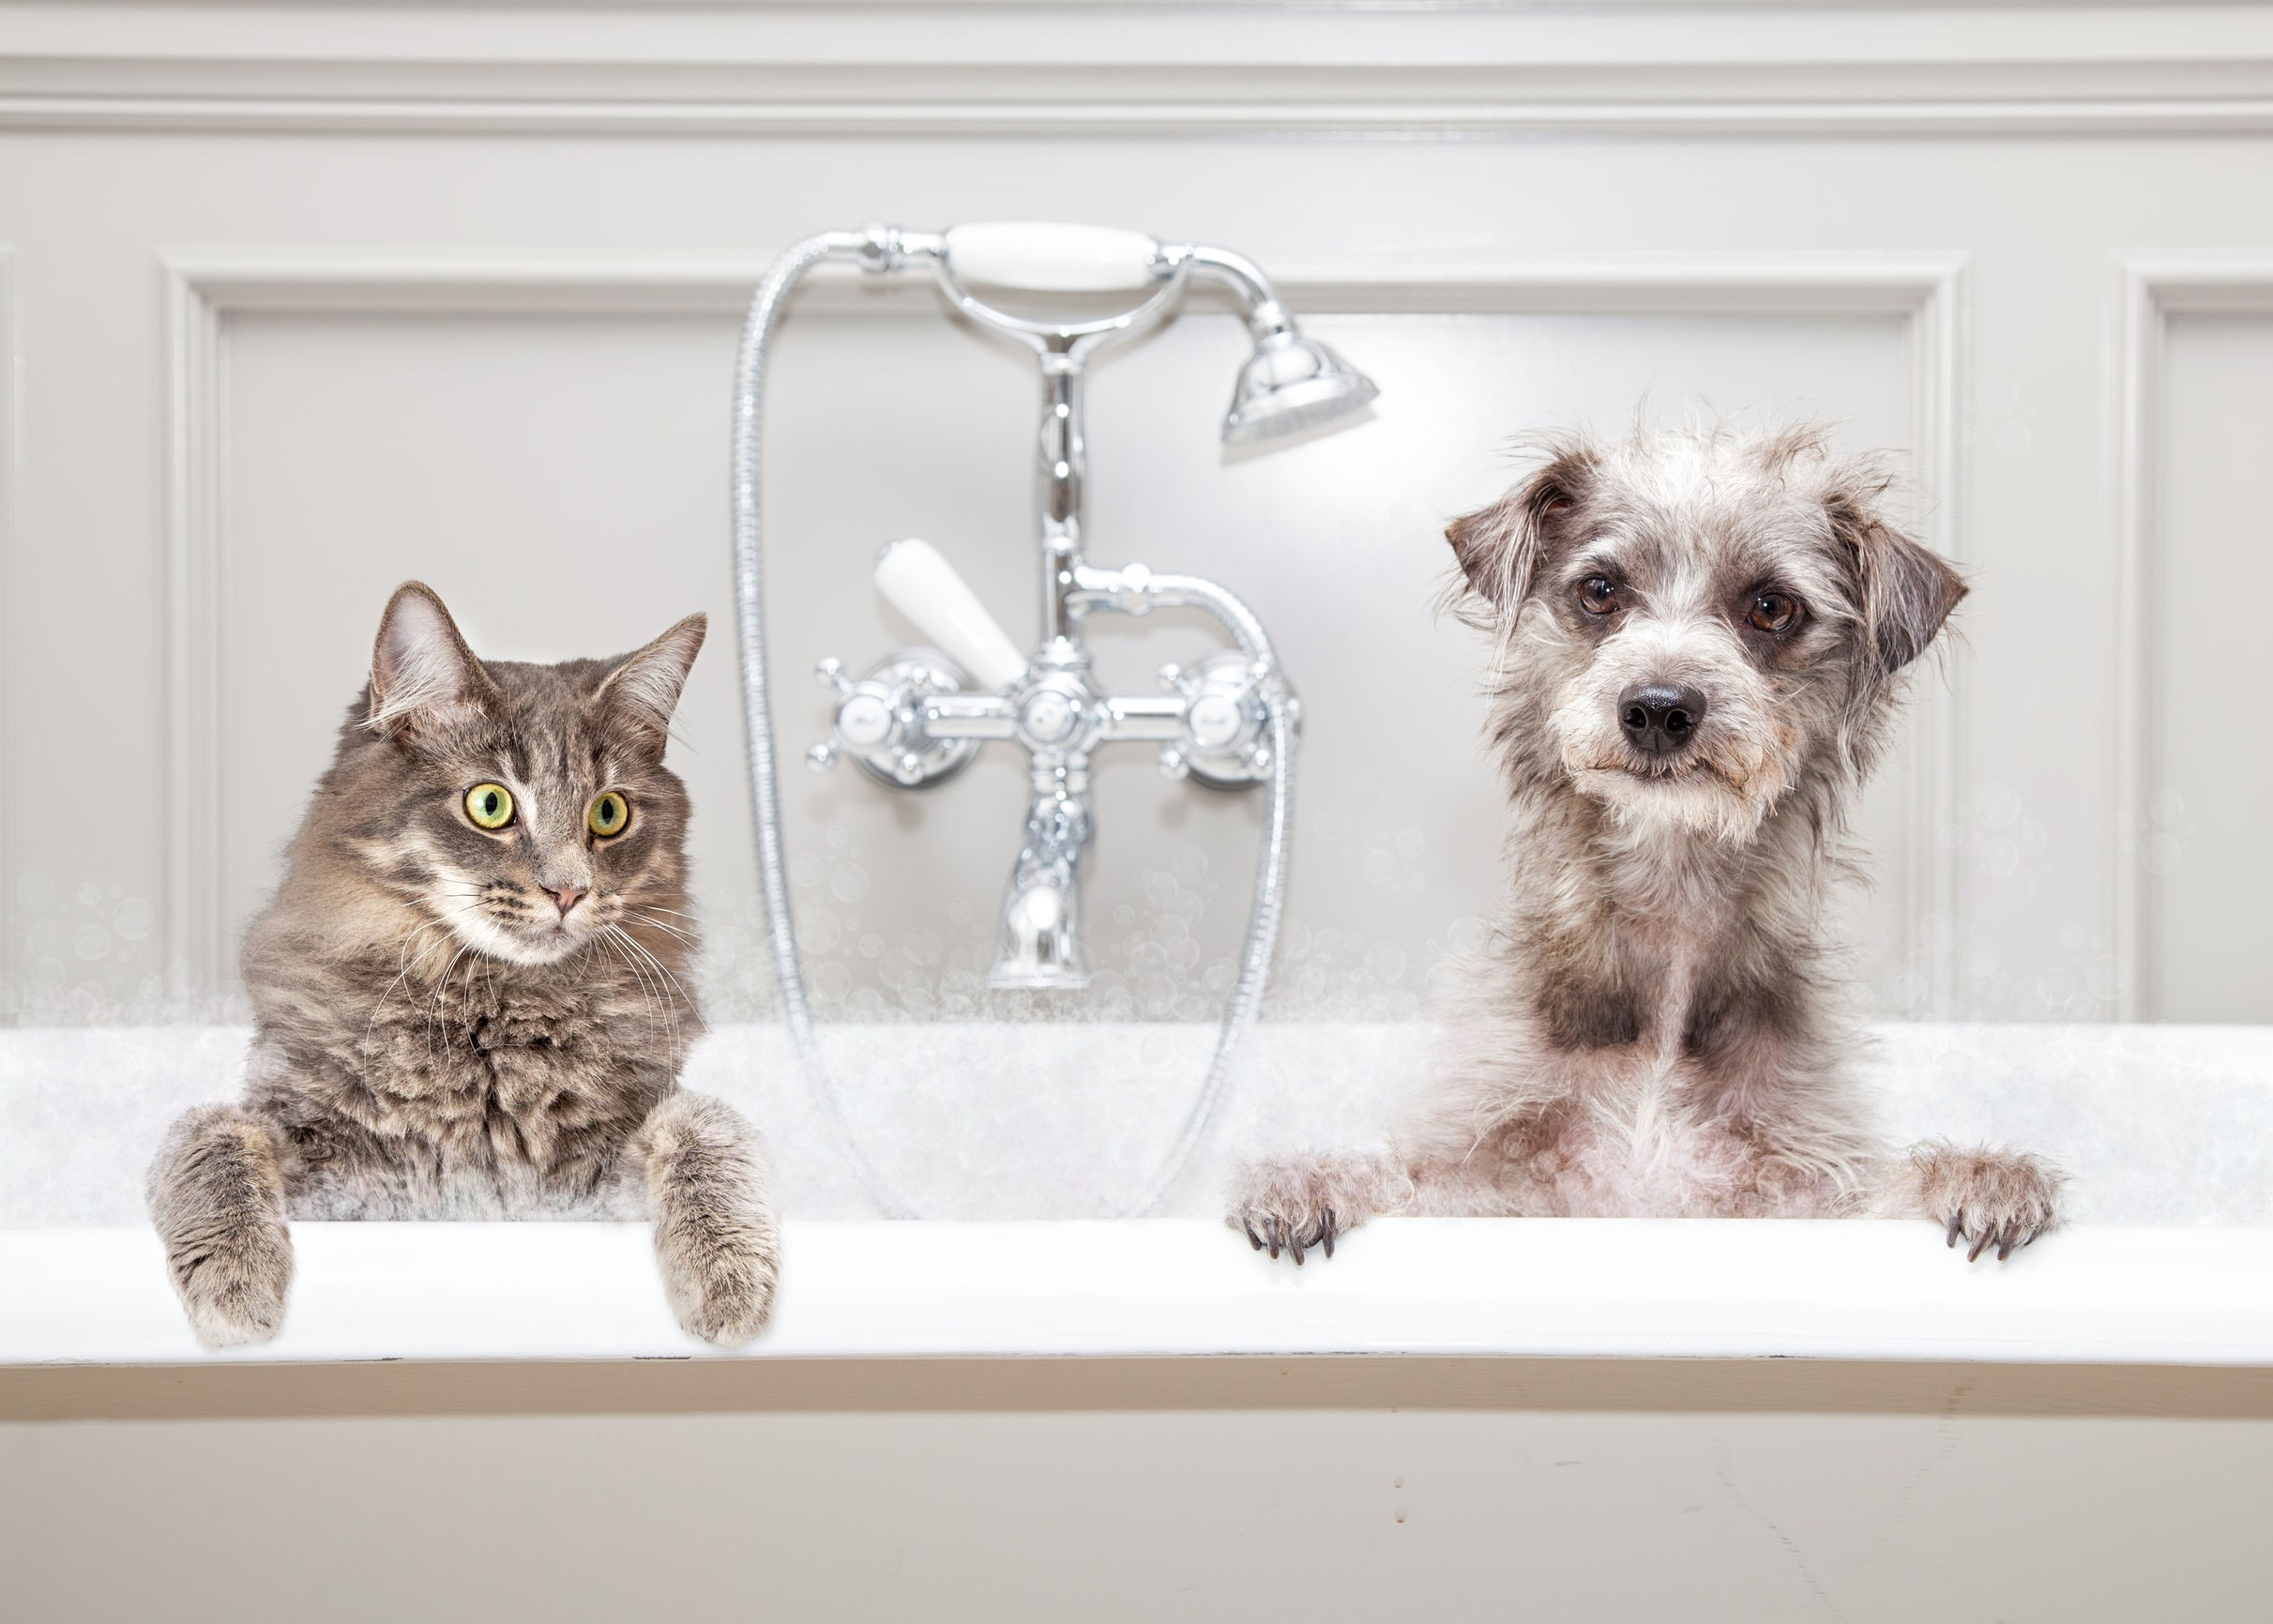 Pet Friendly Bathrooms: Design Yours